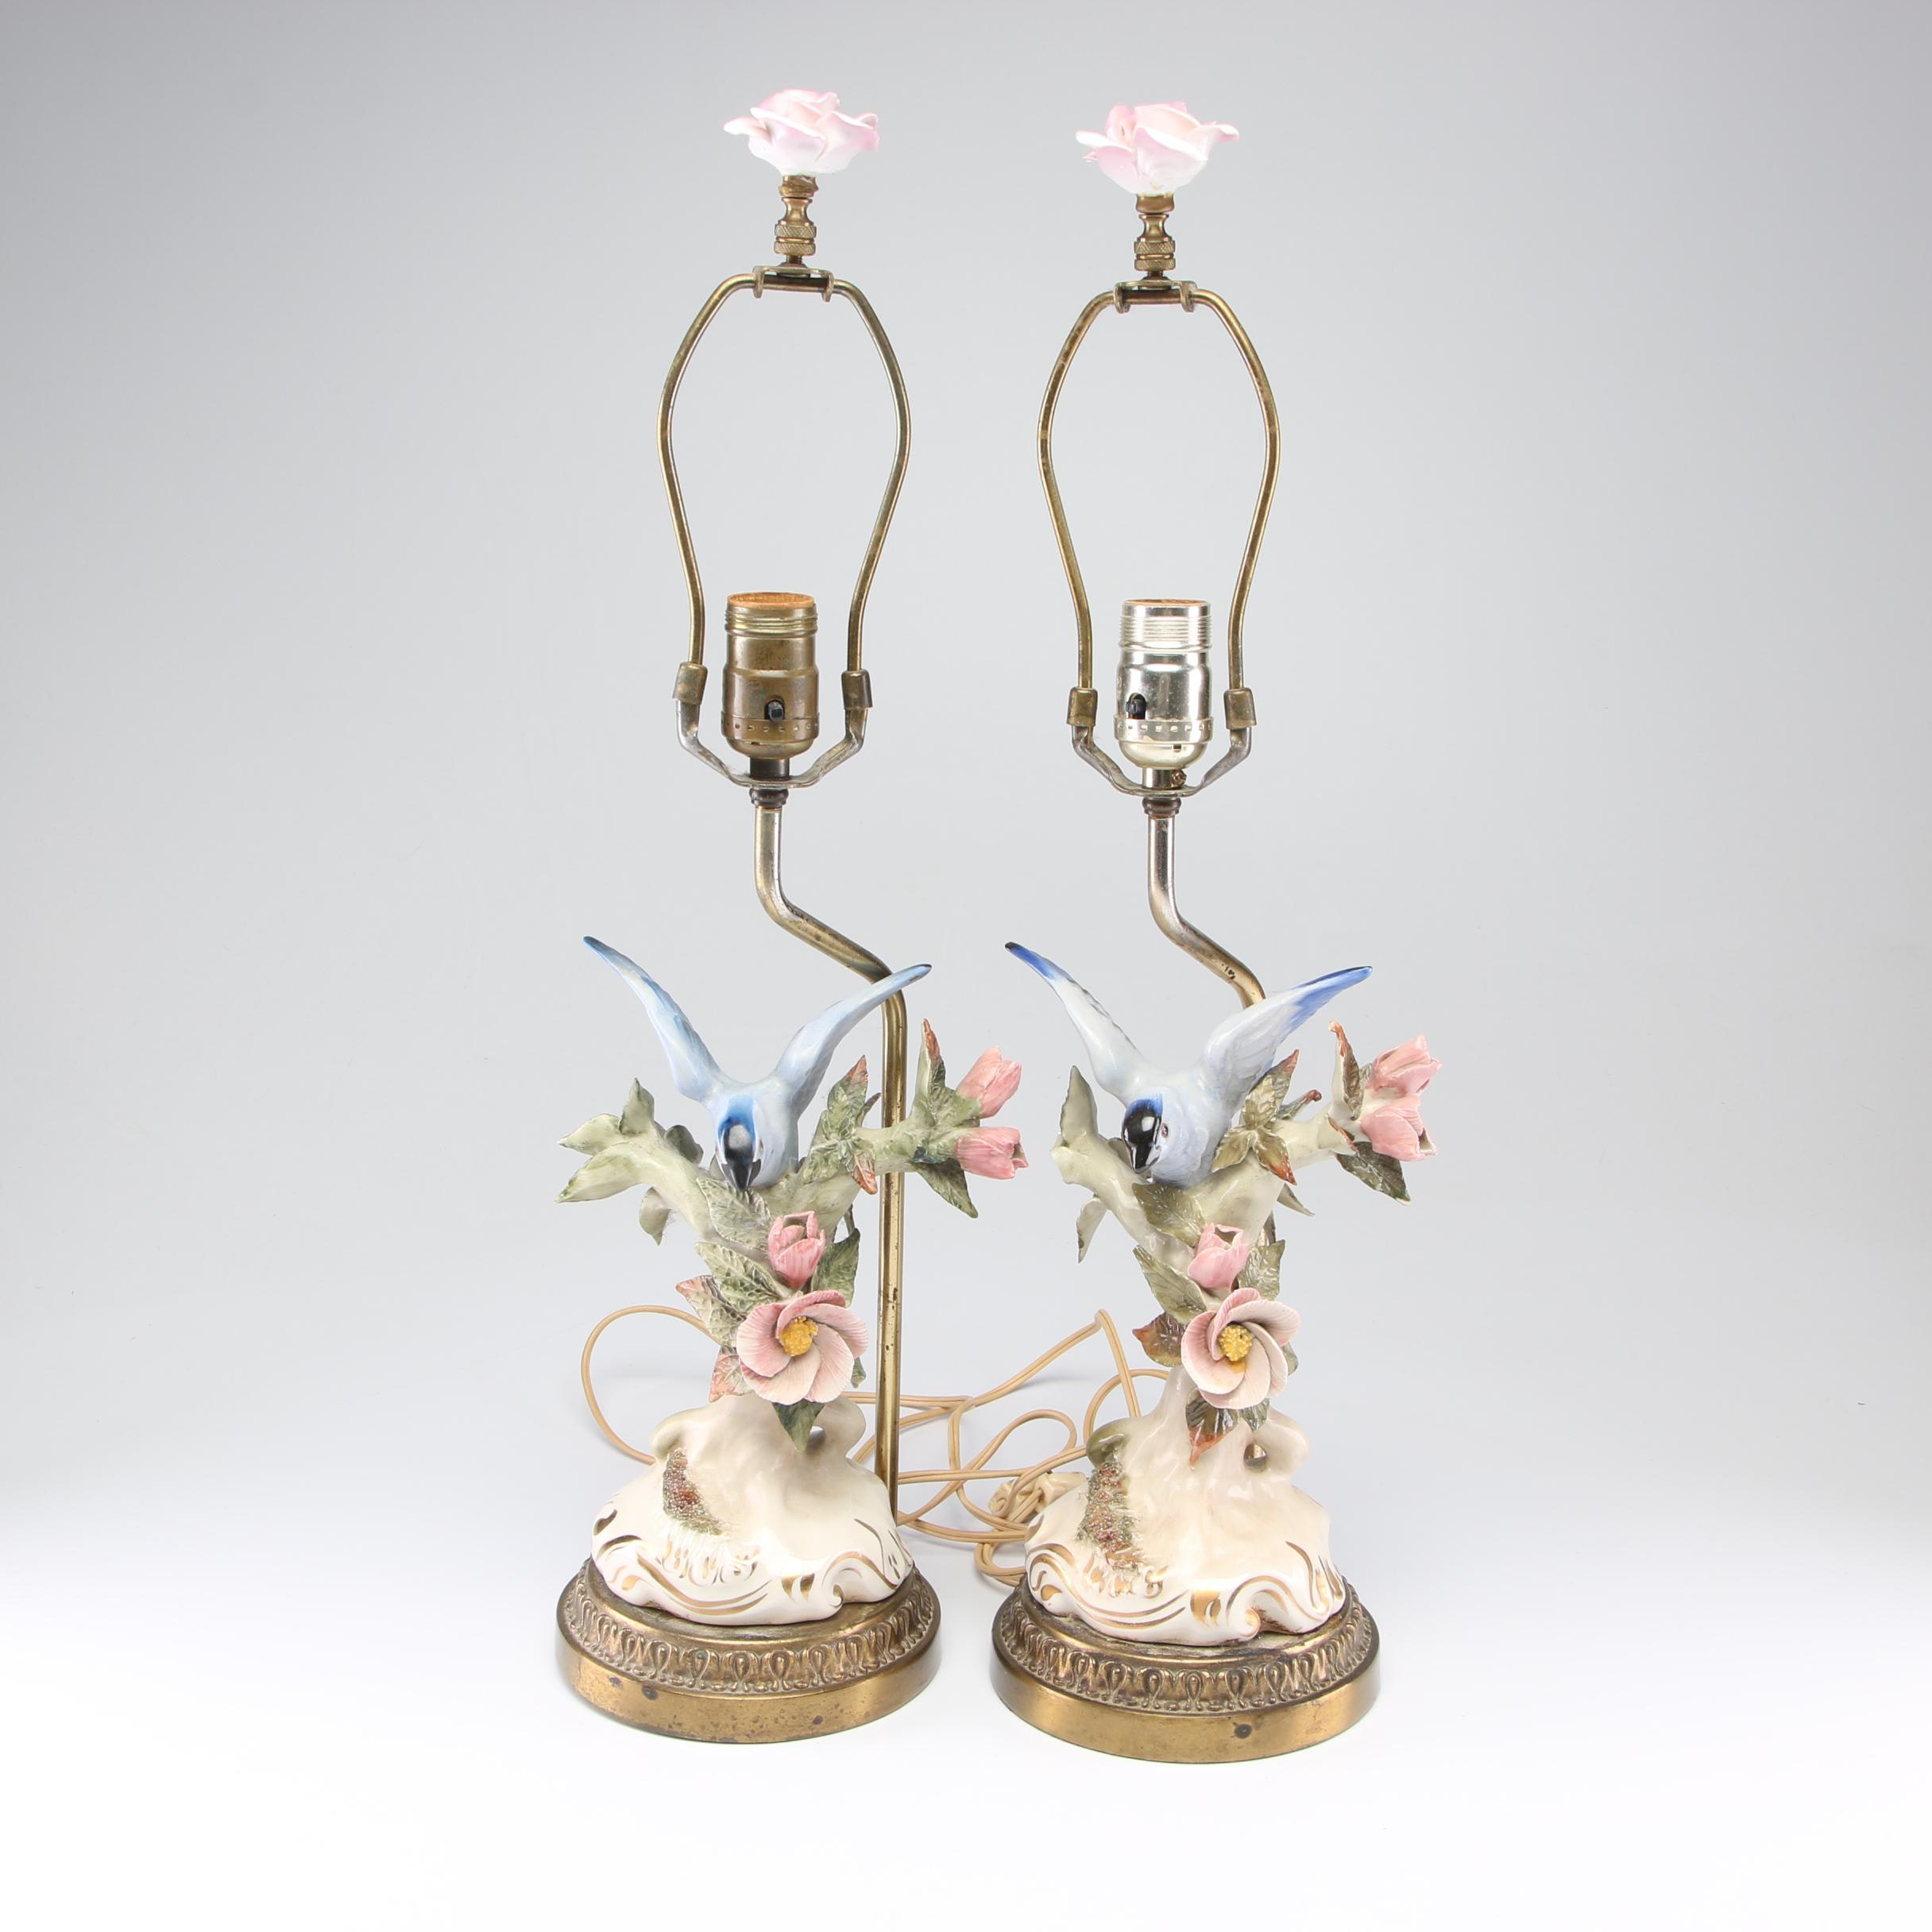 Converted Porcelain and Brass Figural Bird Table Lamps, Mid to Late 20th Century